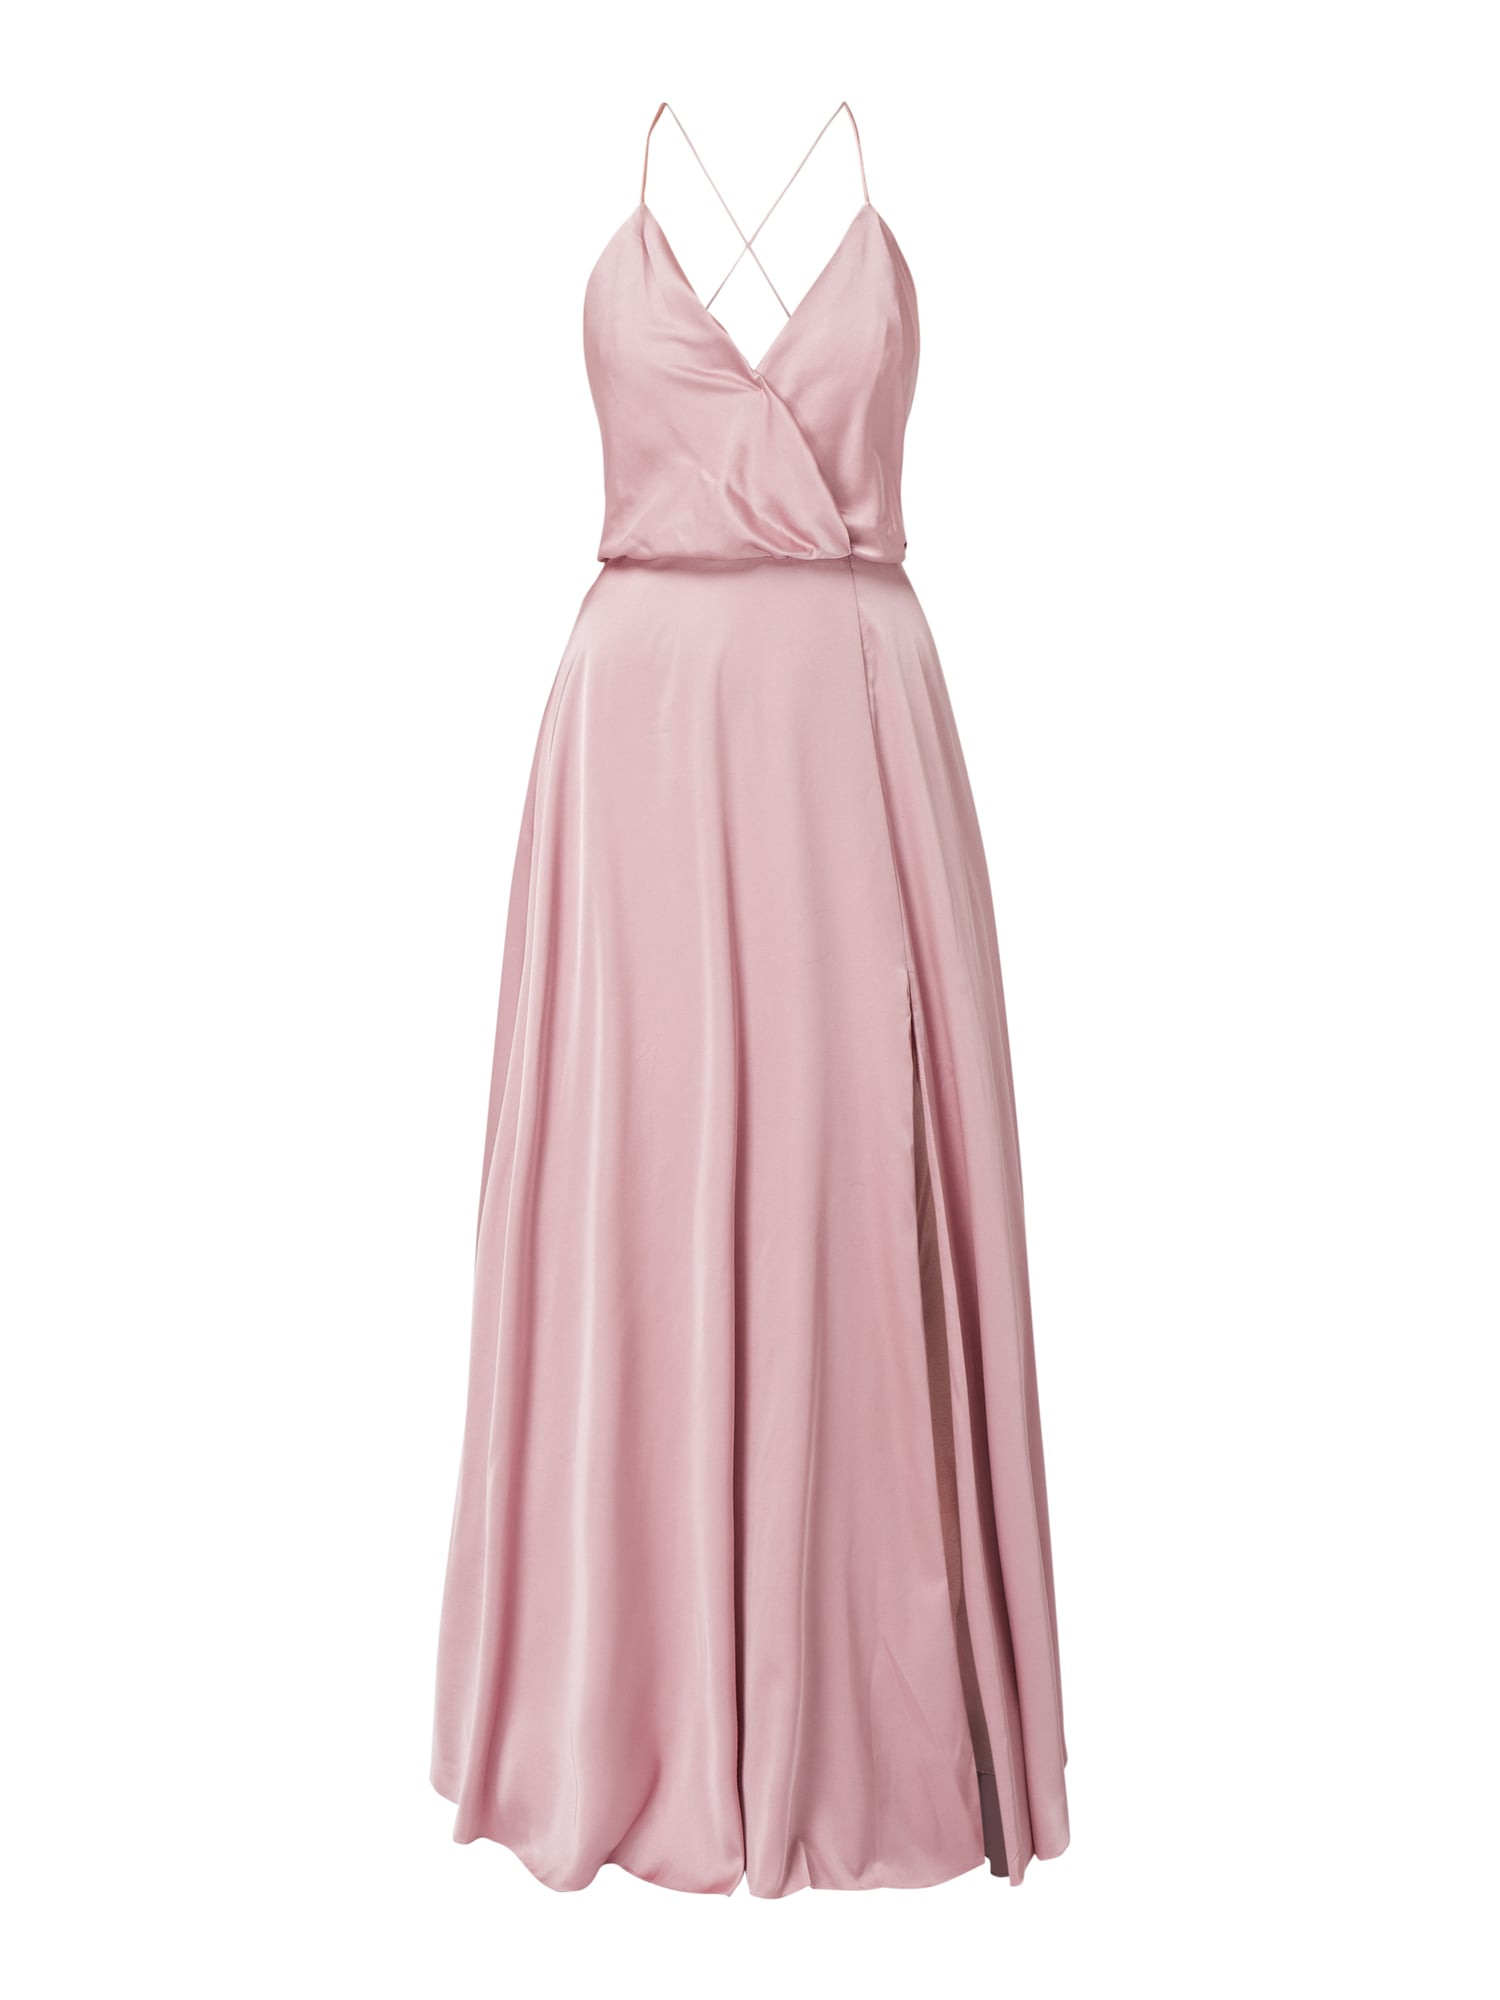 10 Kreativ Unique Abendkleid Satin ÄrmelDesigner Genial Unique Abendkleid Satin Stylish